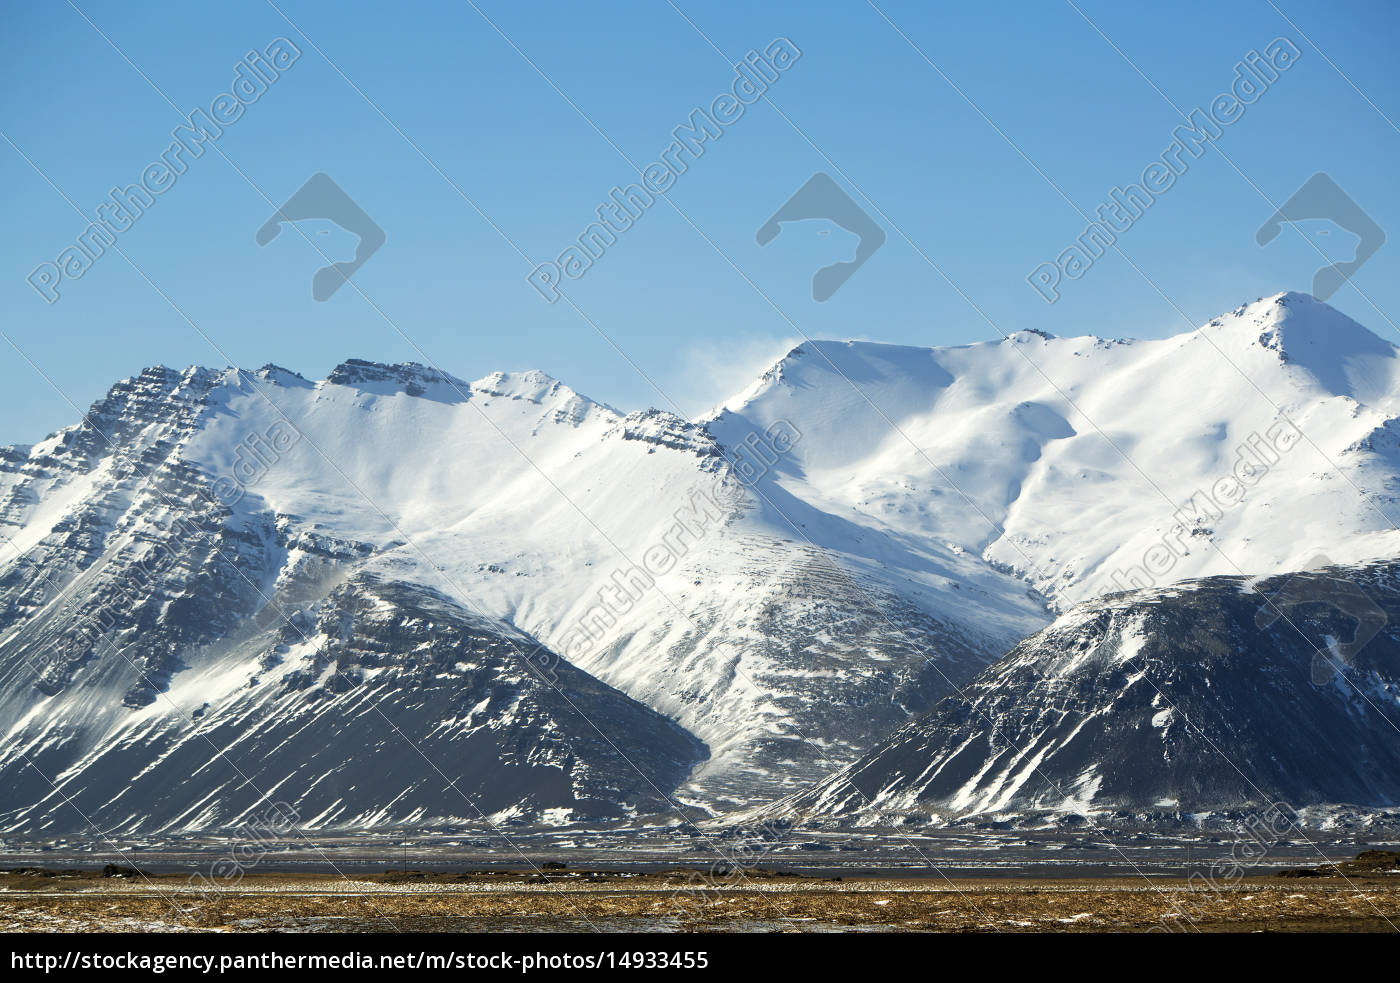 snow-covered, volcanic, mountain, landscape, in, iceland - 14933455